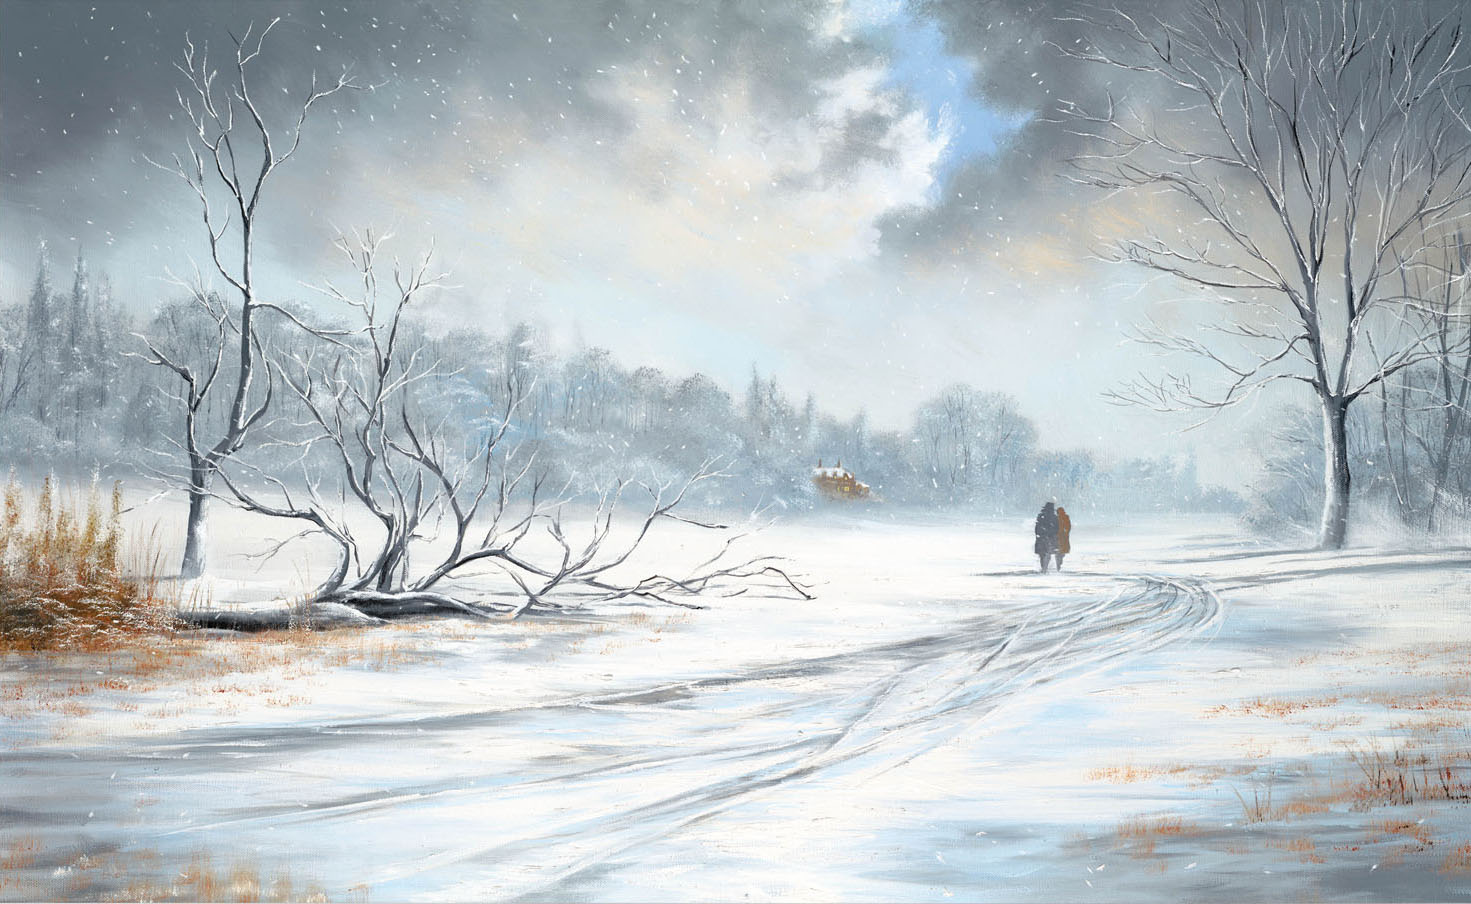 ... the weather i used to paint snow scenes many years ago and it is